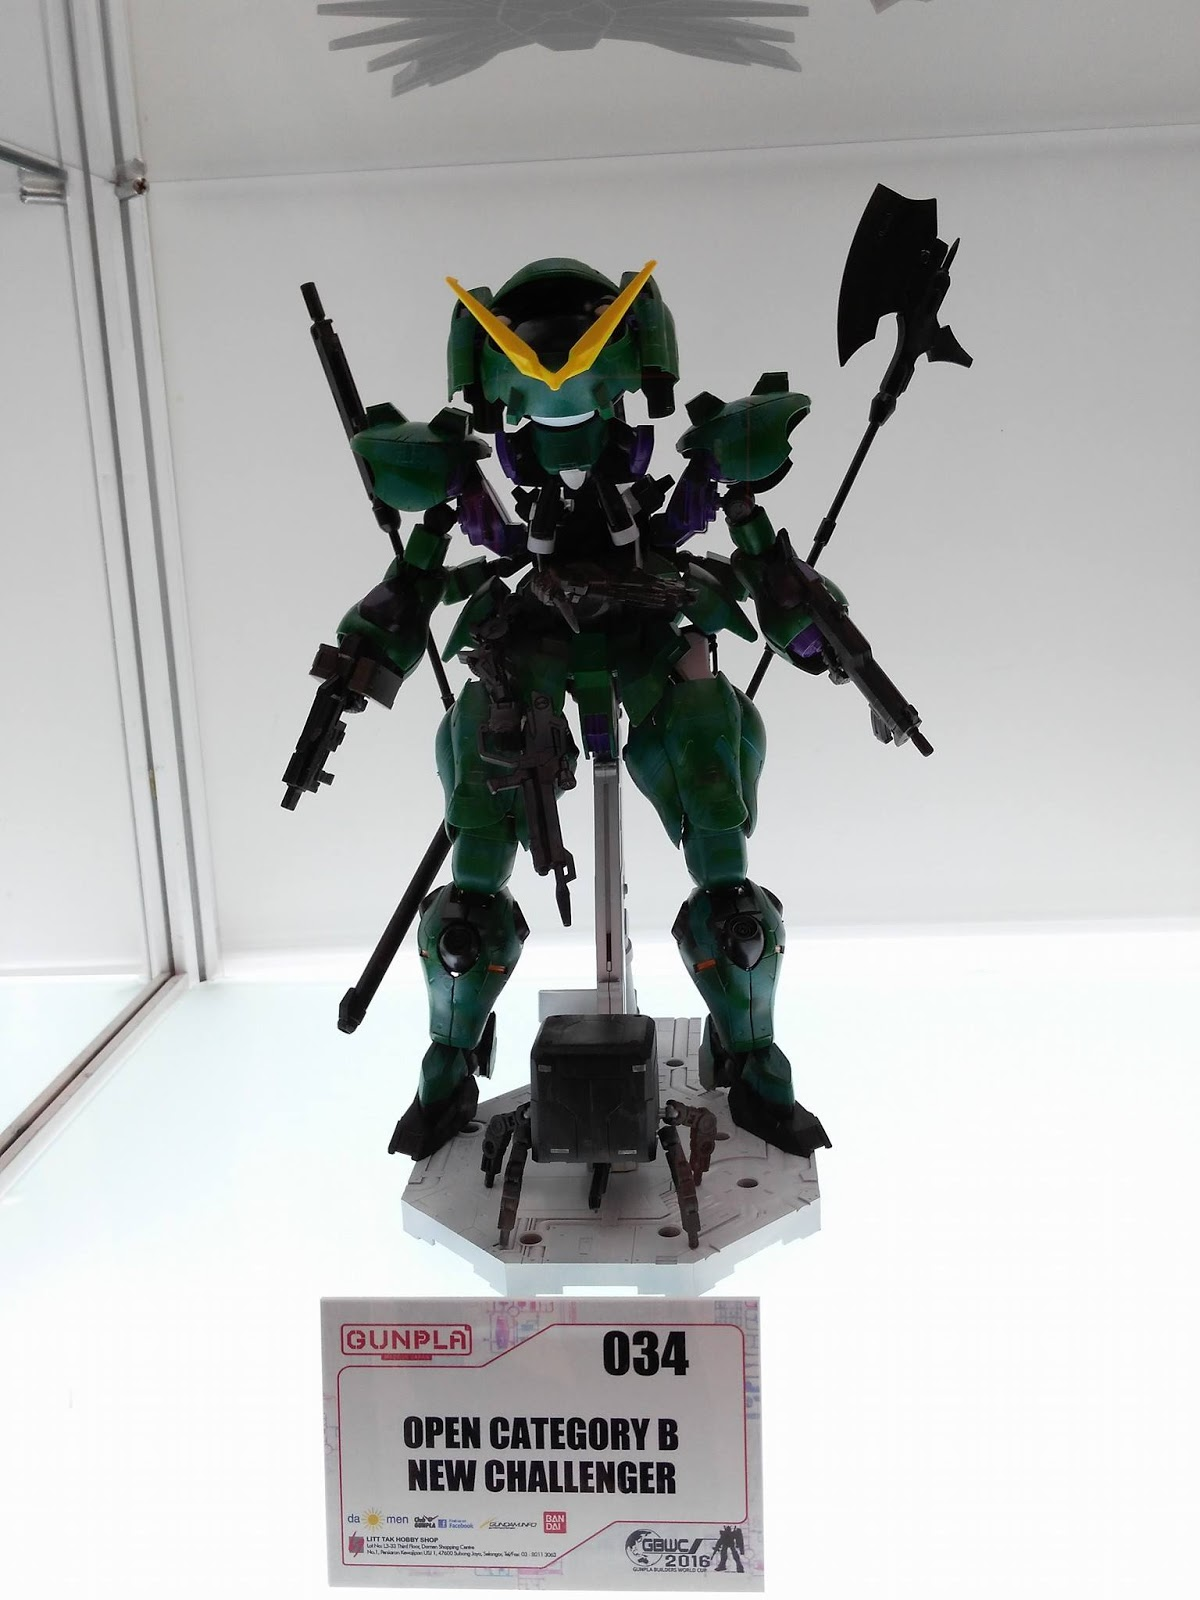 GunPla Builders World Cup [GBWC] 2016 Malaysia, Kuala Lumpur Image Gallery by Colony Part 1